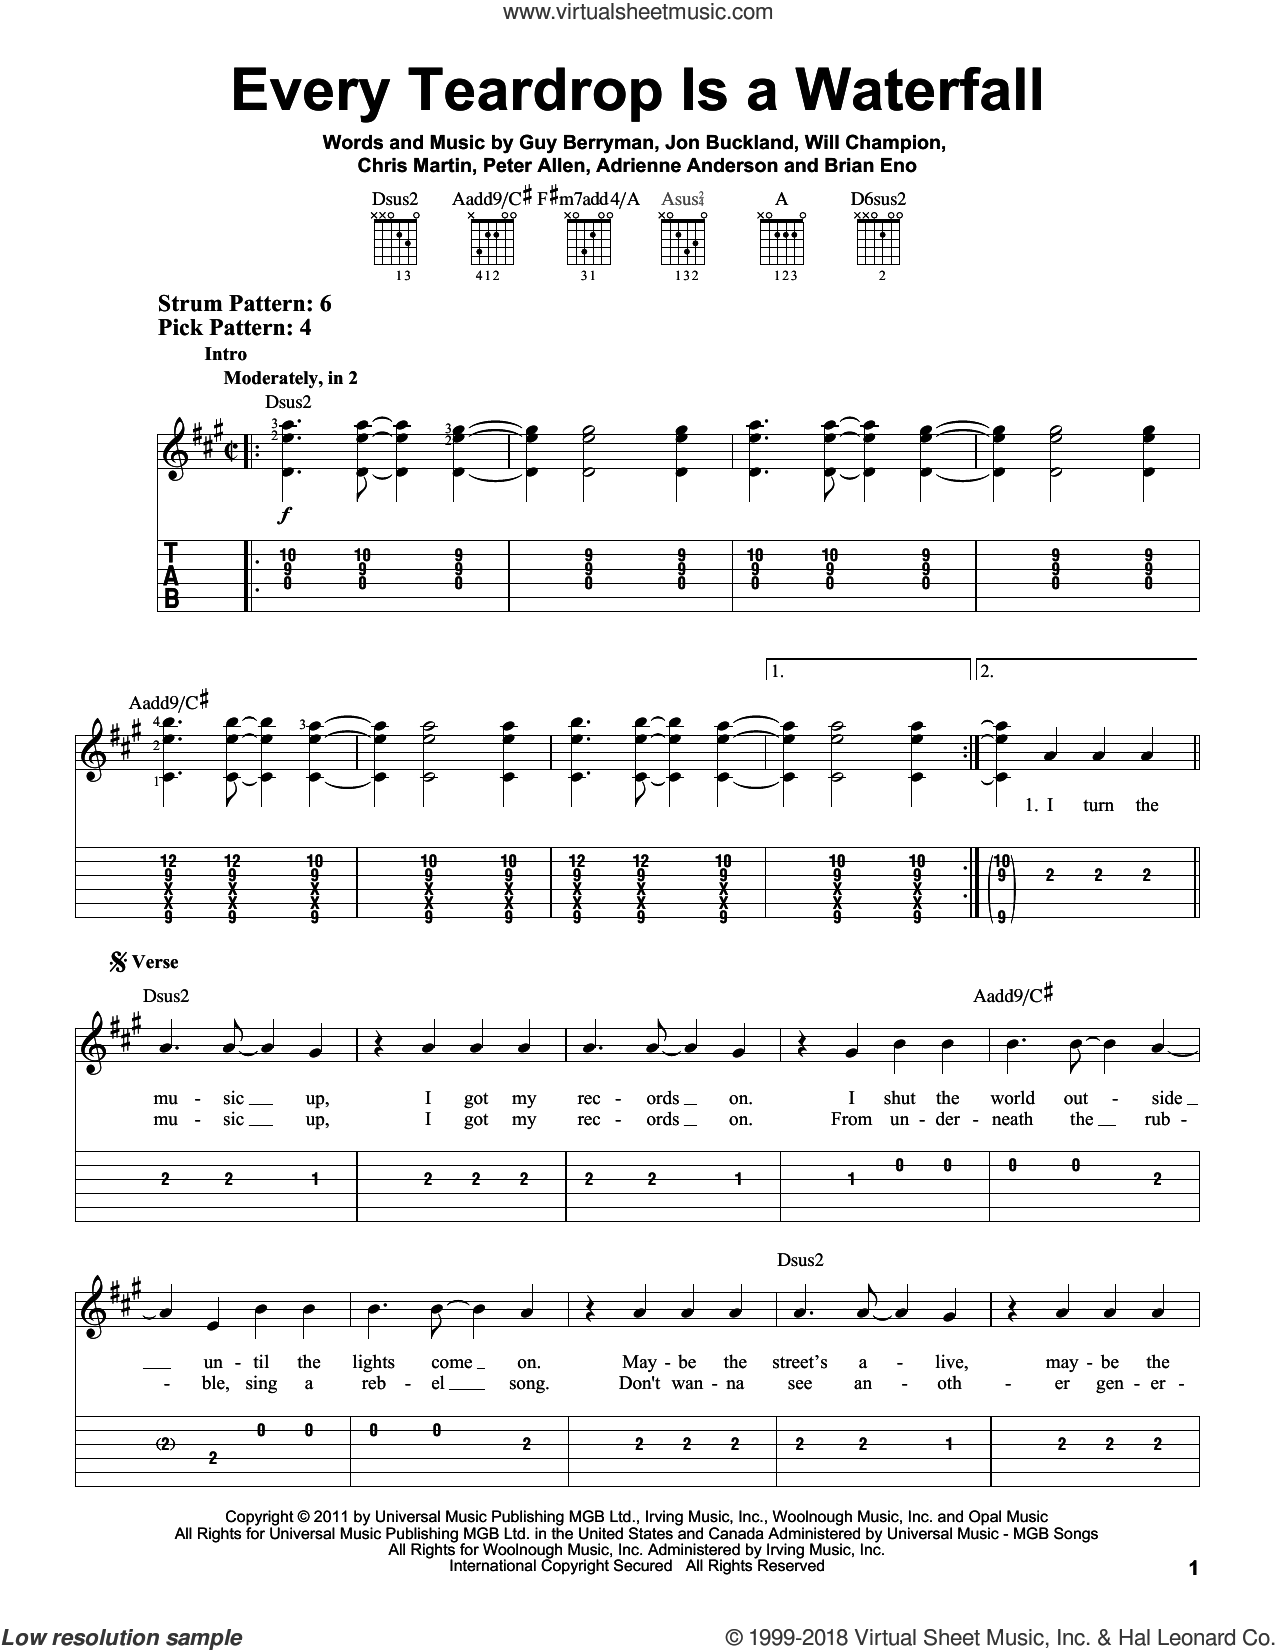 Every Teardrop Is A Waterfall sheet music for guitar solo (easy tablature) by Will Champion